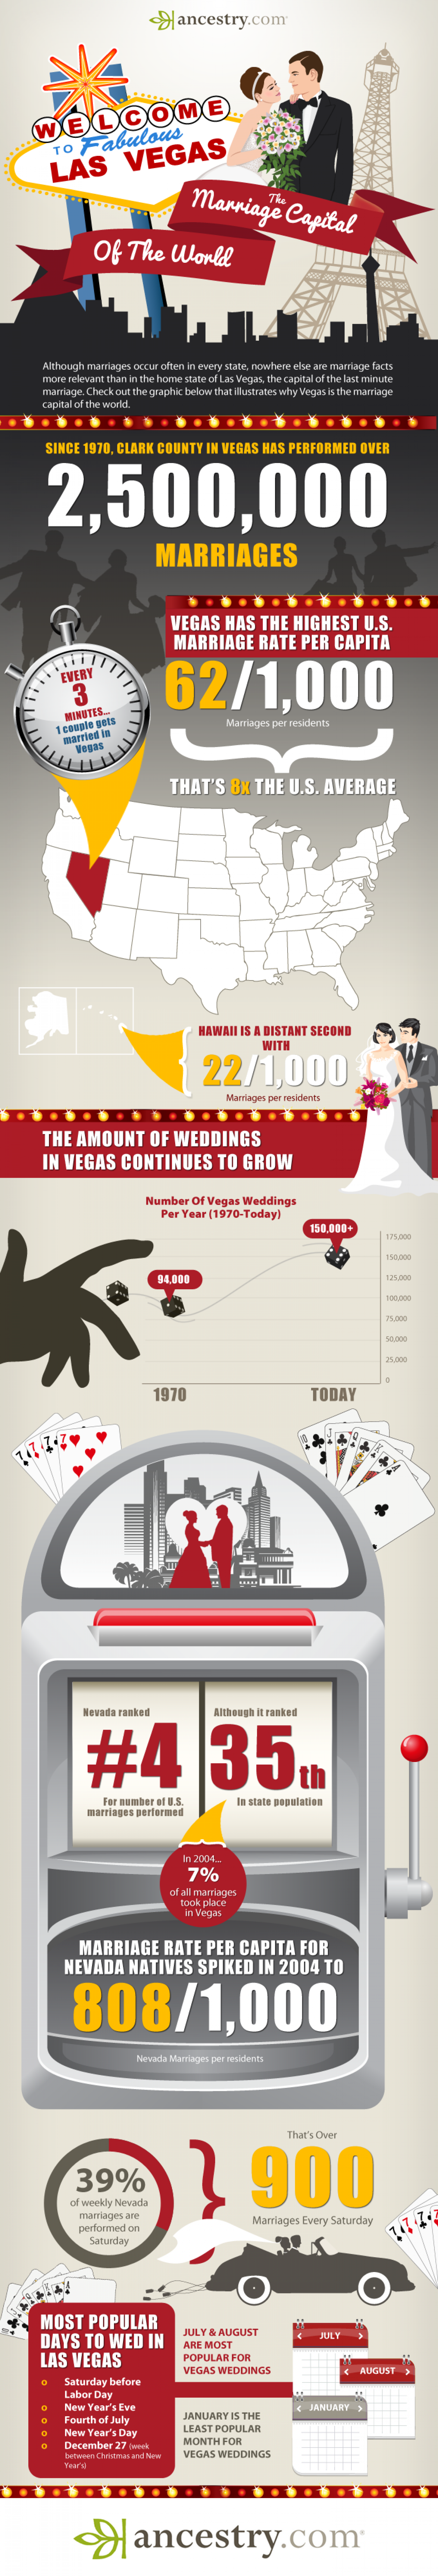 The Marriage Capital Of The World - Las Vegas Infographic